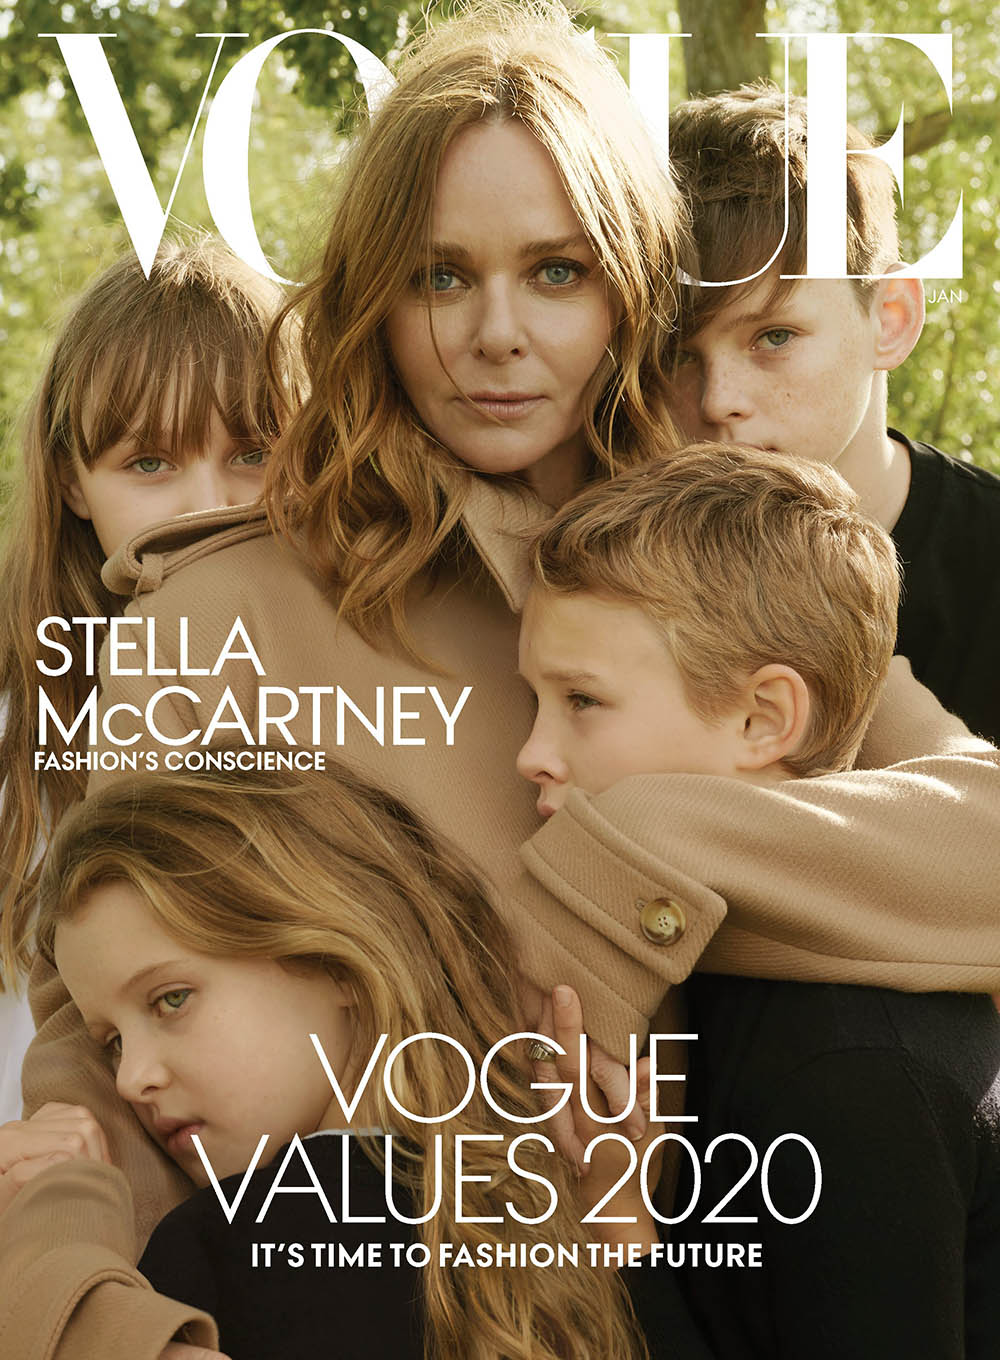 Vogue US January 2020 covers by Annie Leibovitz